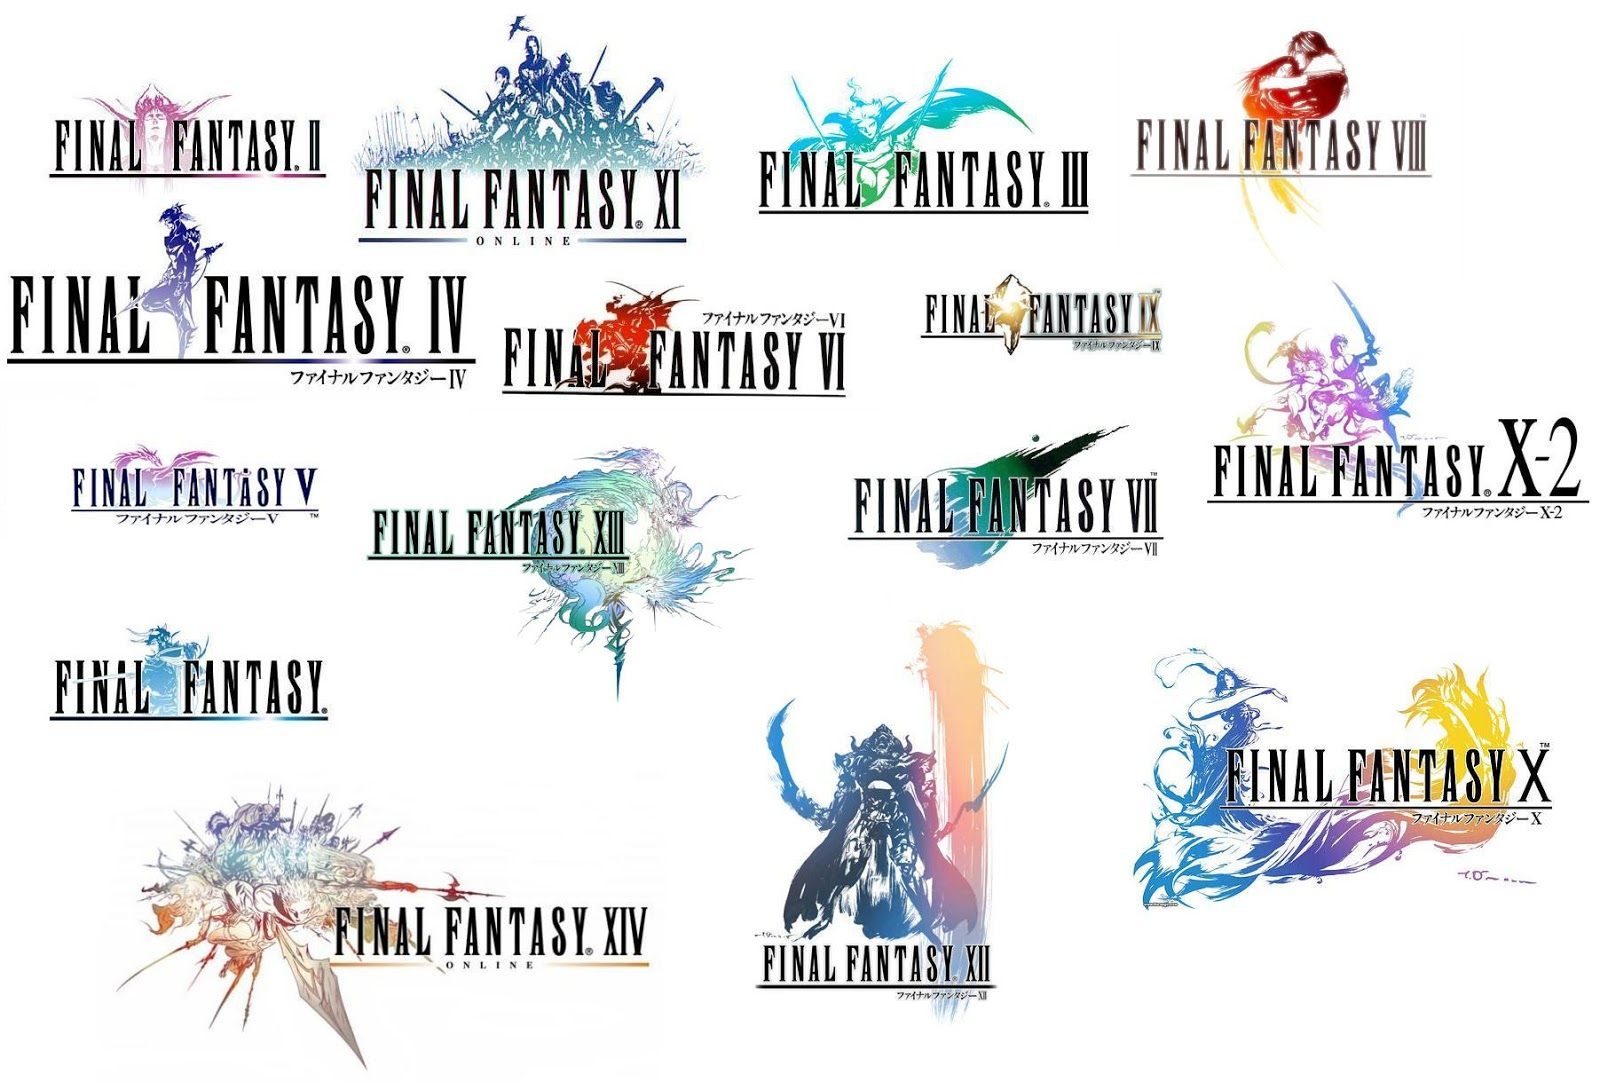 GAMING ROCKS ON: Just When Did The Final Fantasy Series Go South?